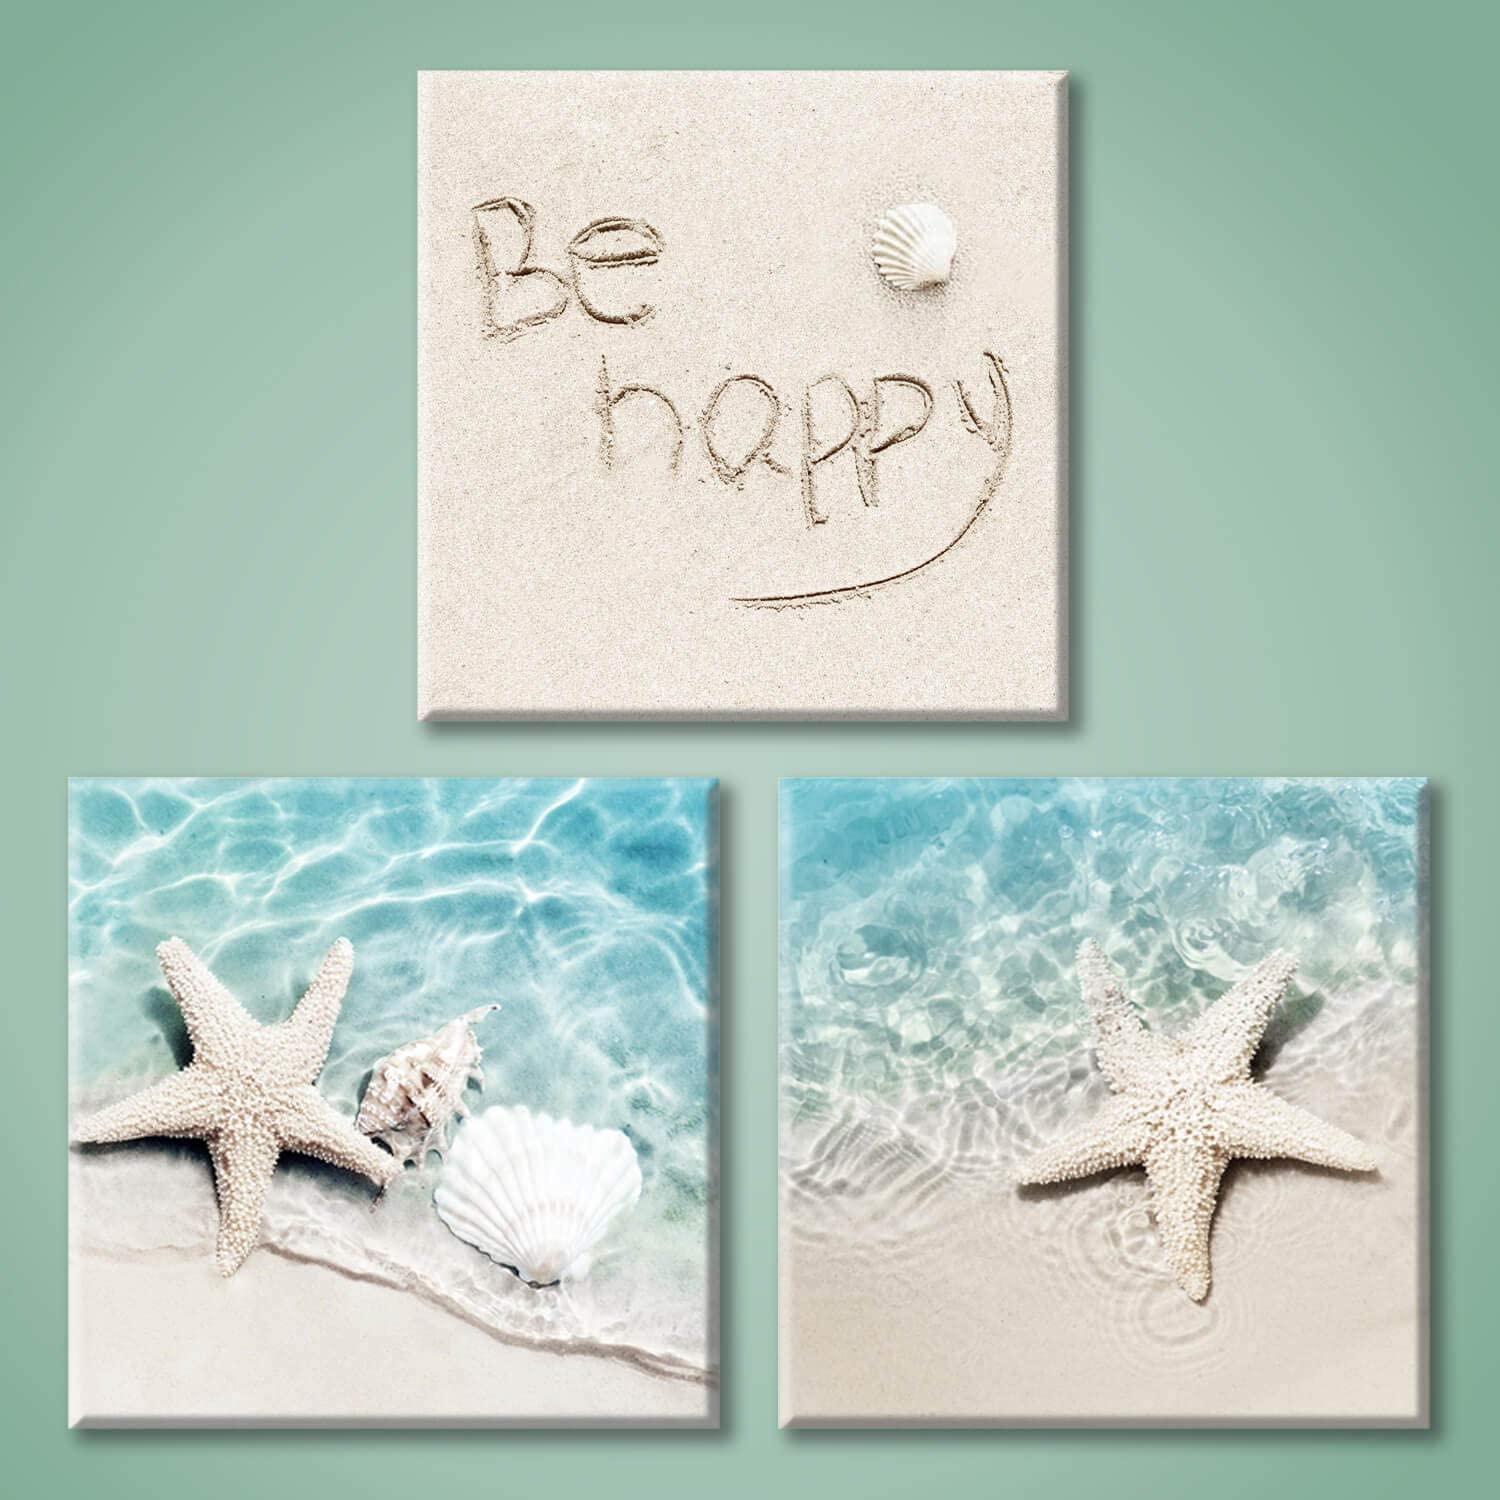 Beach Starfish Canvas Wall Art: Starfish and Conch in The Teal Sea Water Picture Prints on Canvas for Bathroom (12'' x 12'' x 3 Panels)